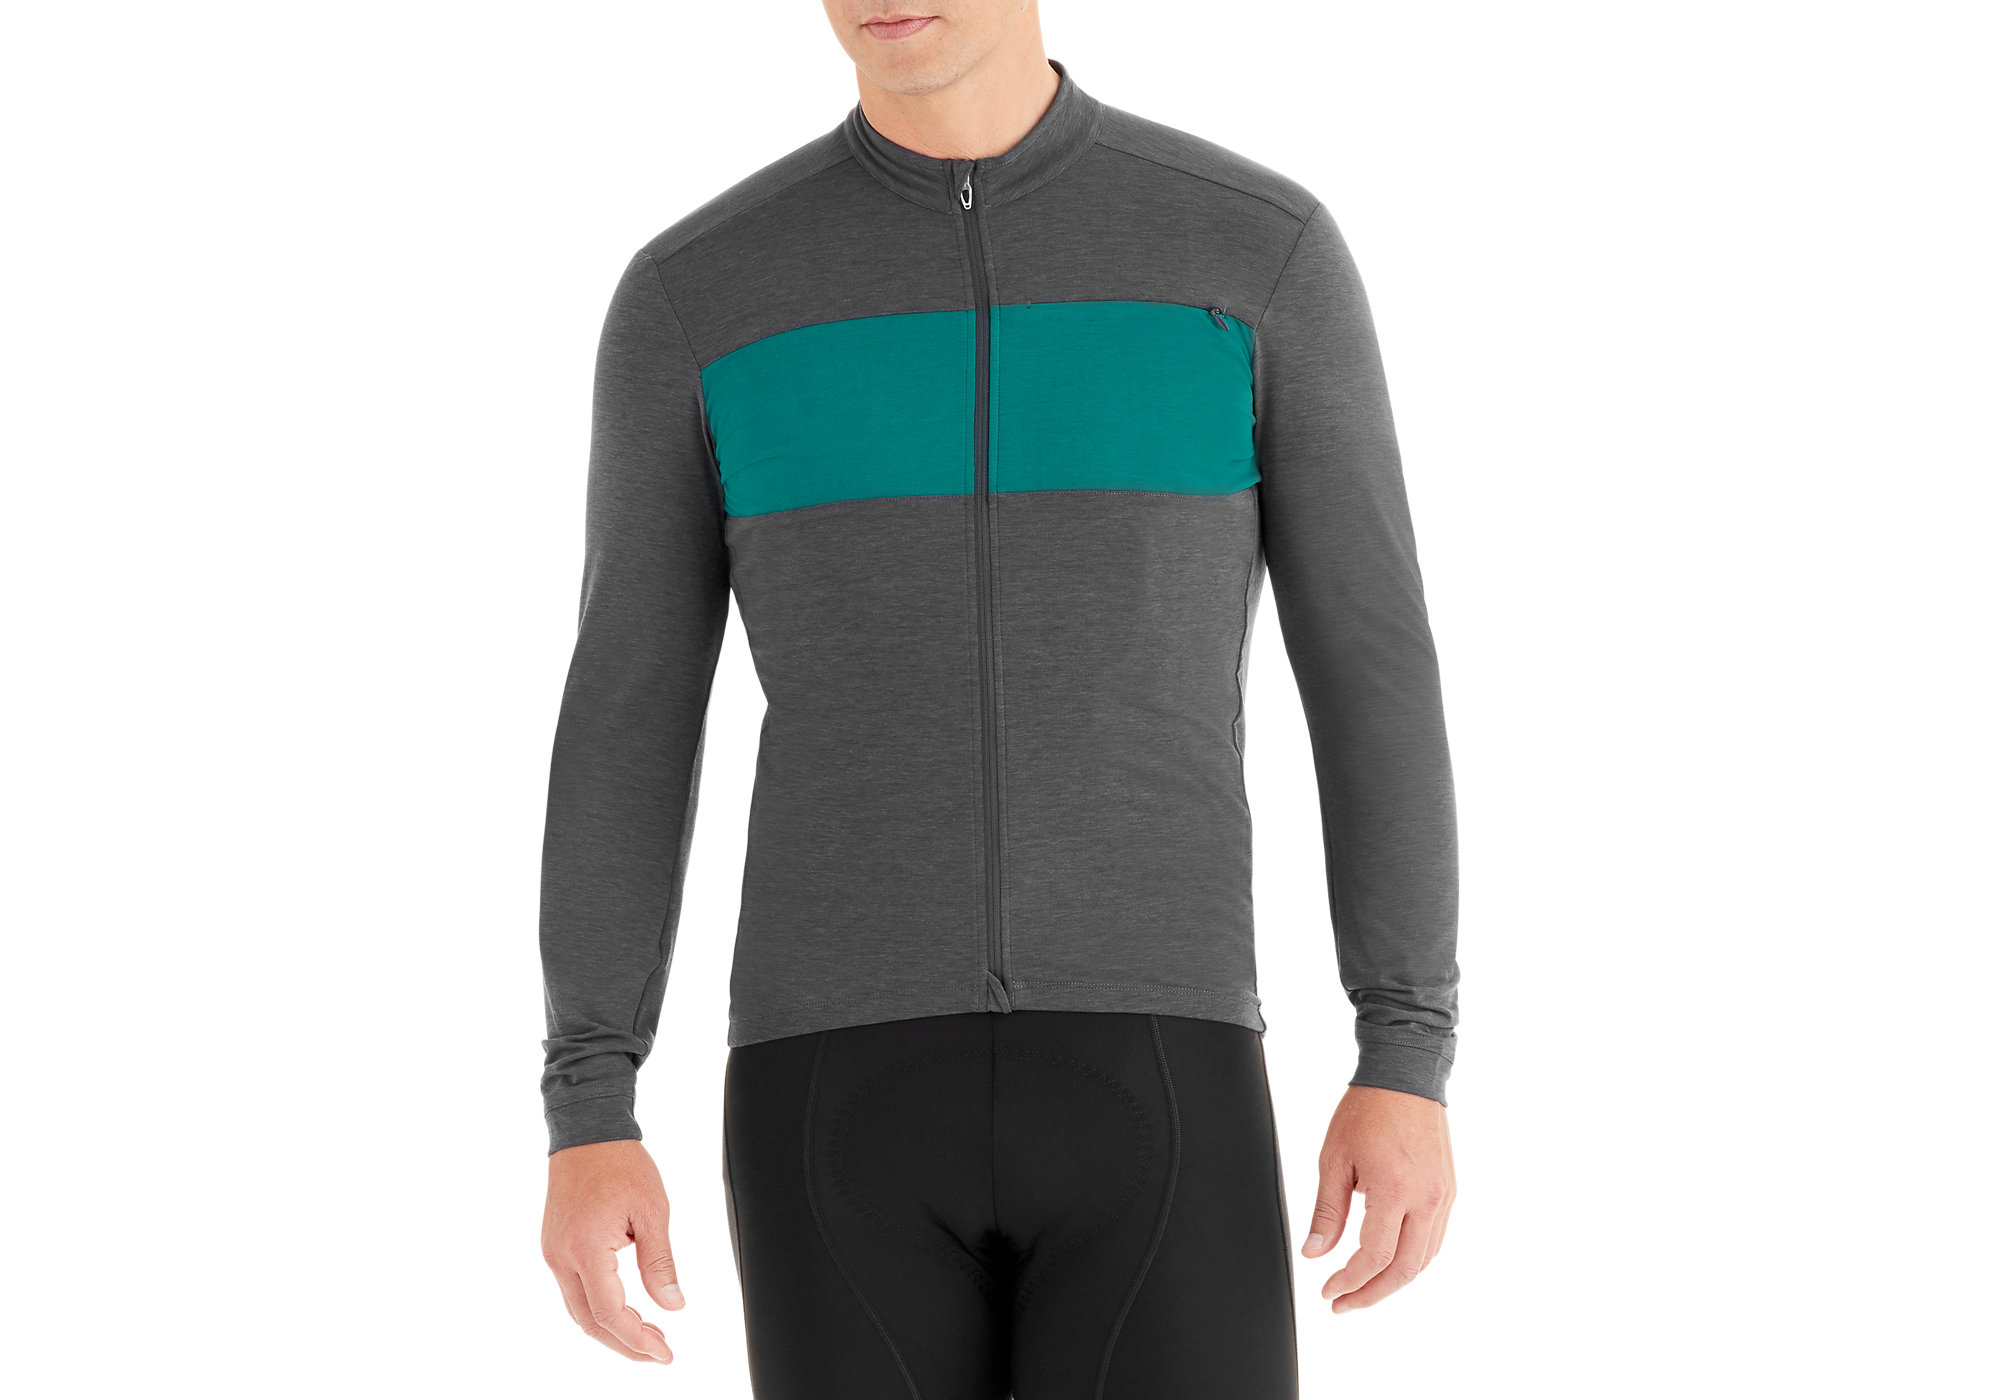 2018 Specialized RBX drirelease® Merino Long Sleeve Jersey - Specialized  Concept Store d24b0401f